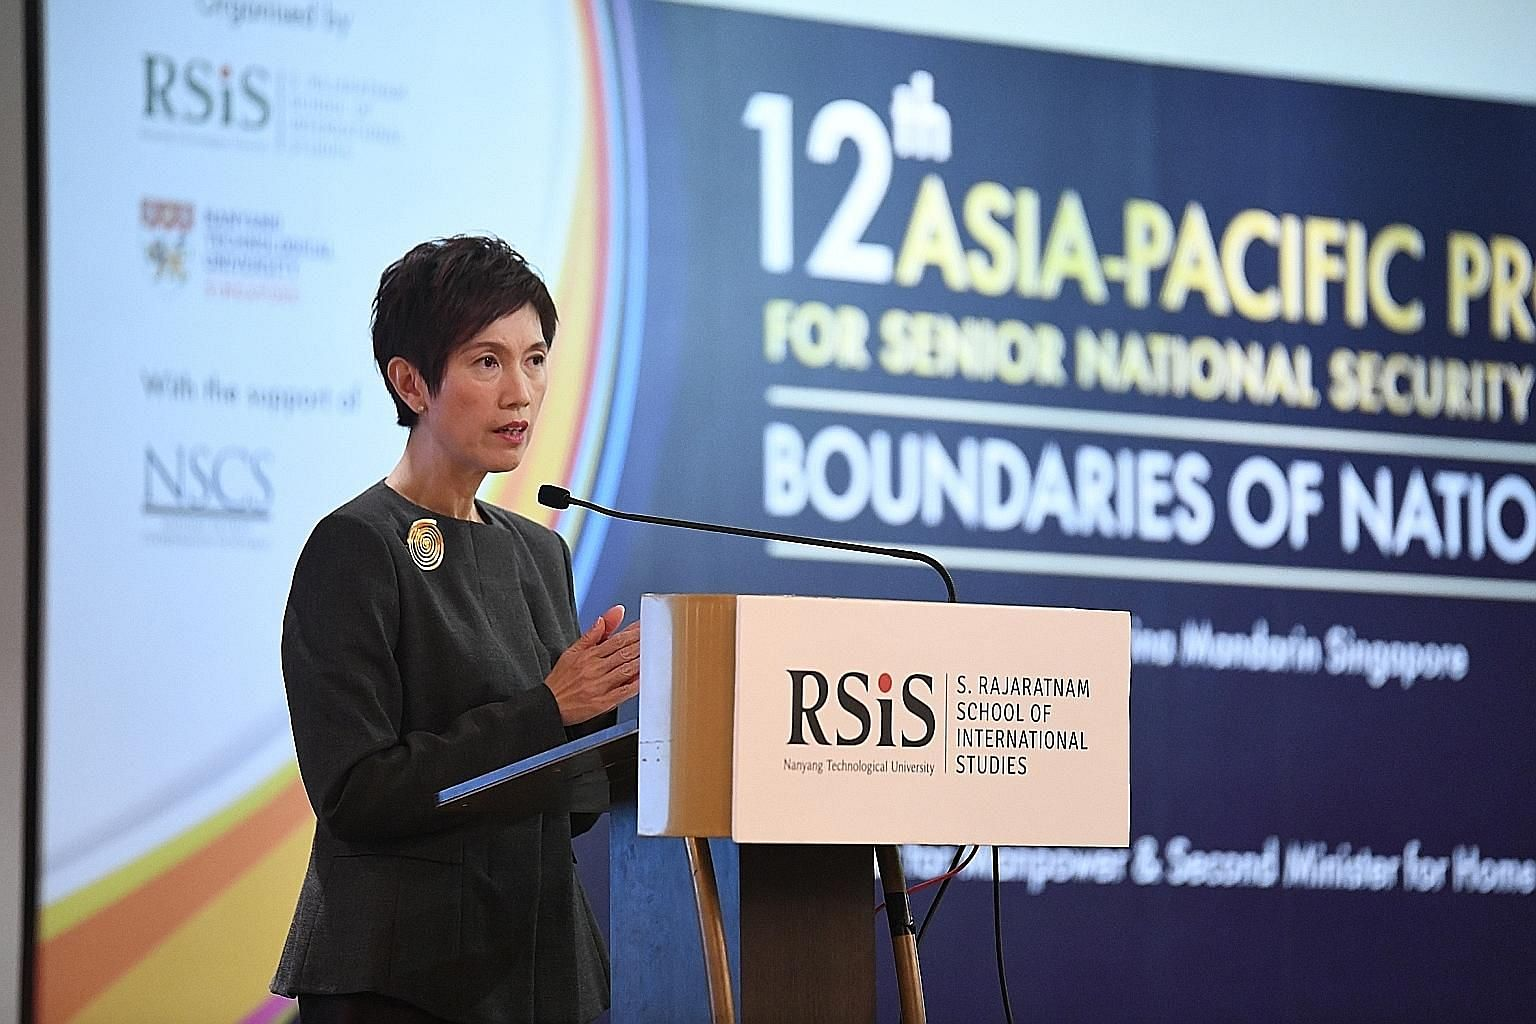 """The community has a role to play, to enlarge the common social space, and foster mutual understanding and trust,"" said Mrs Teo. Business and technology firms can also help to boost cyber security and to prevent the spread of falsehoods and hate spee"